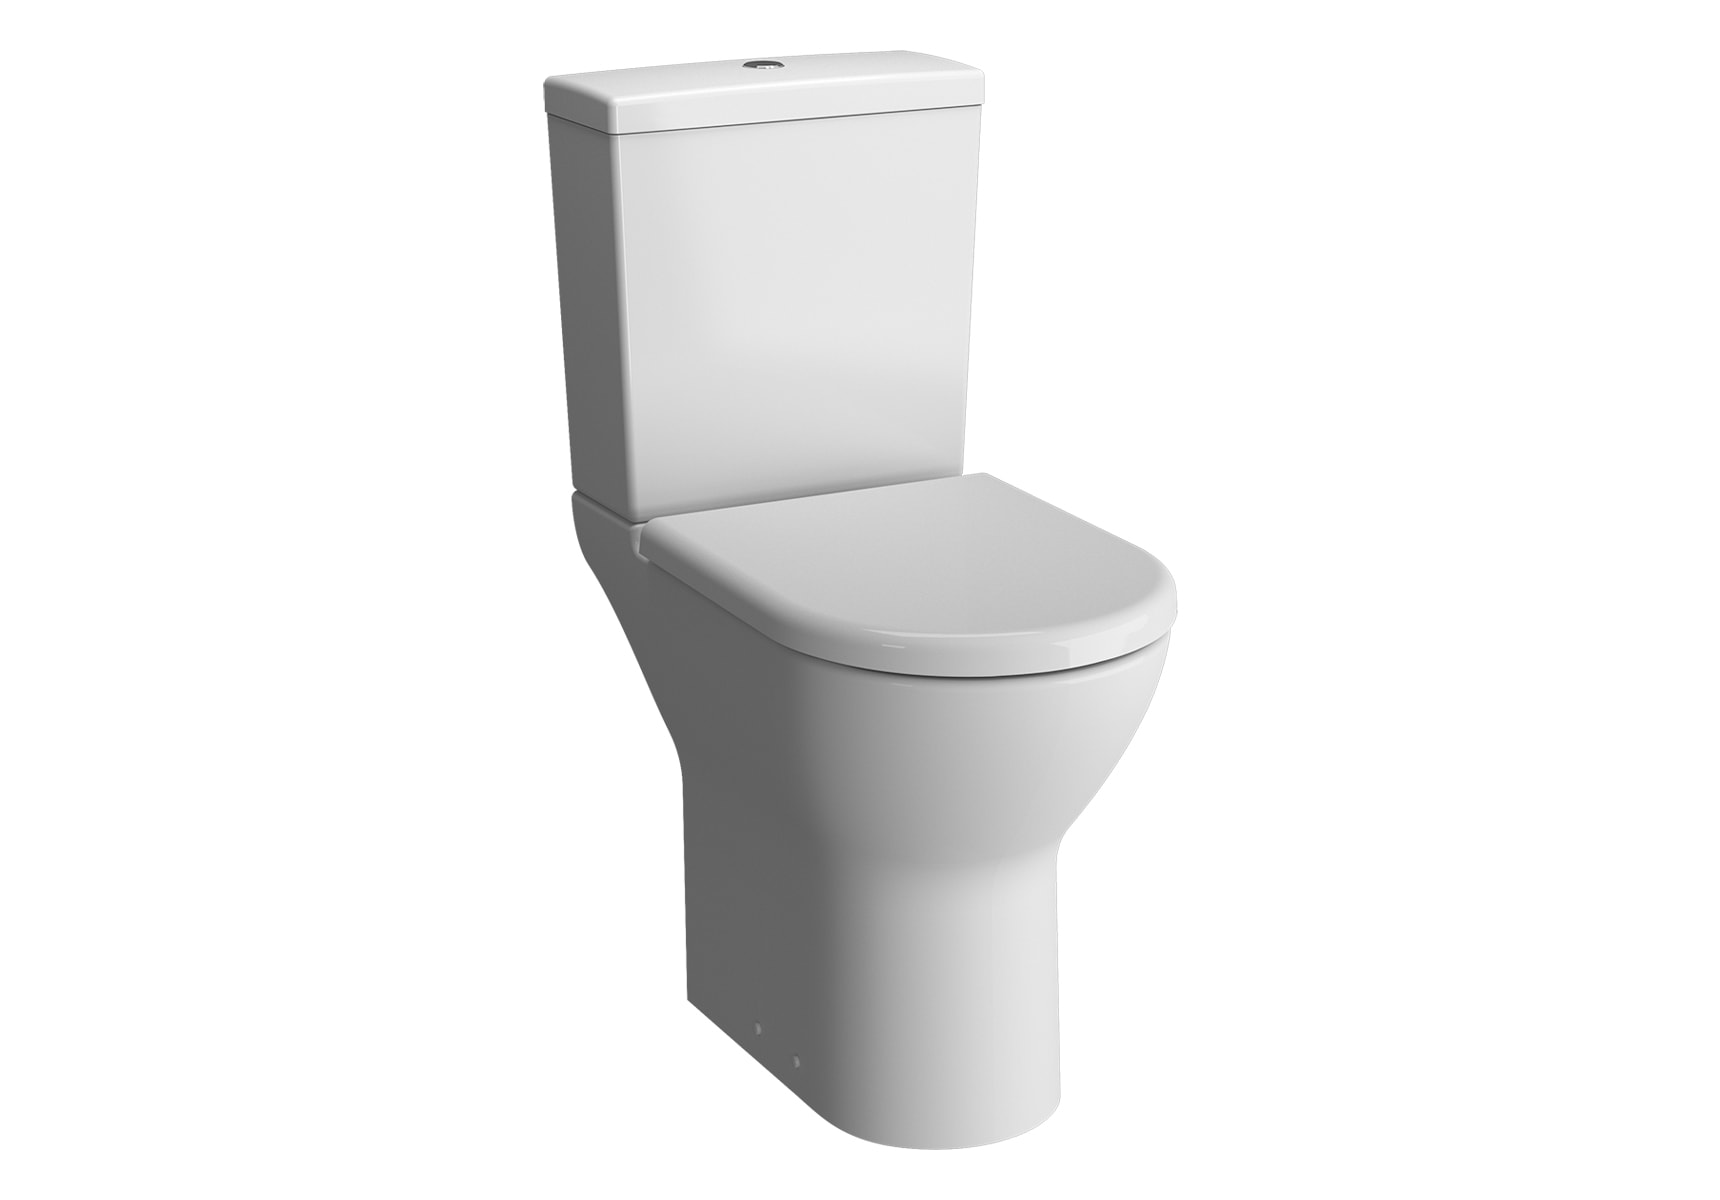 S50 Close-Coupled WC Pan, 65cm, High Universal Outlet (Short) without Bidet Pipe